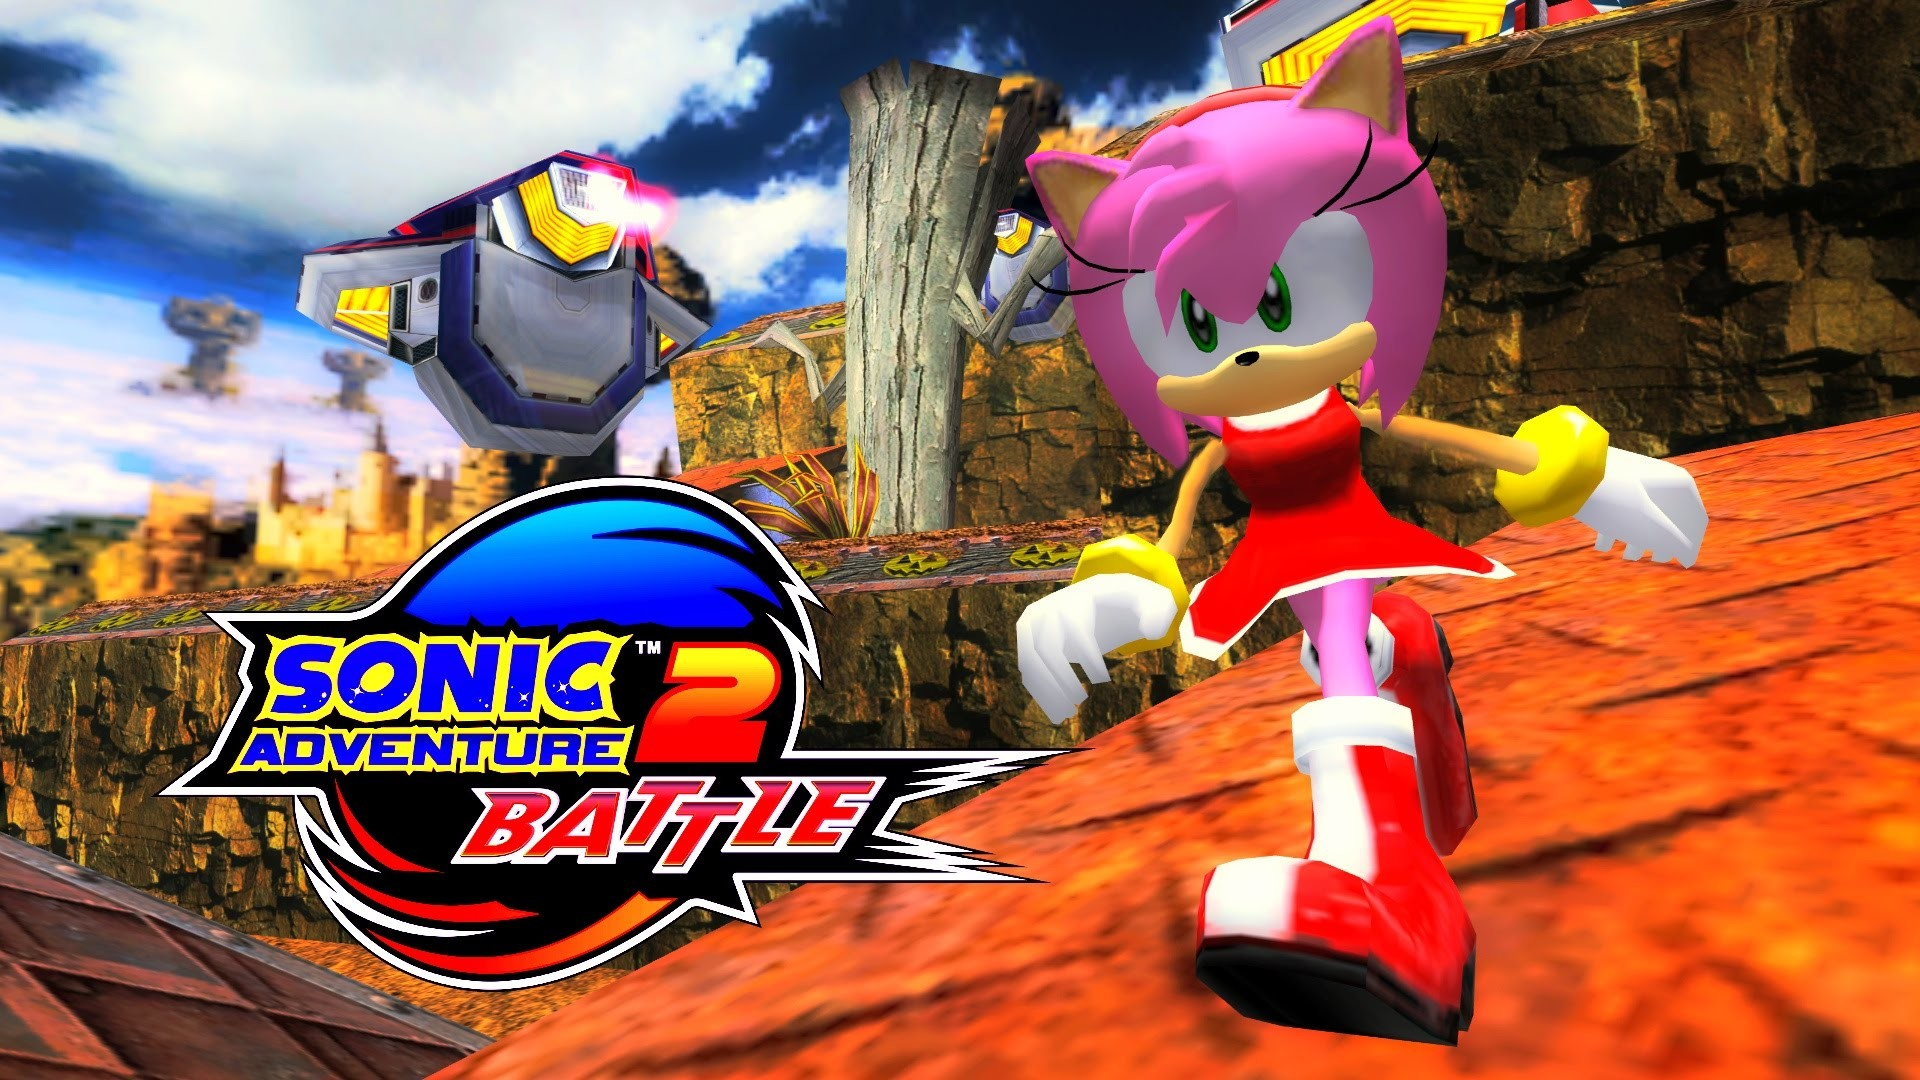 1920x1080 Sonic Adventure 2: Battle - Sky Rail - Amy (No HUD) [REAL Full HD,  Widescreen] 60 FPS - YouTube